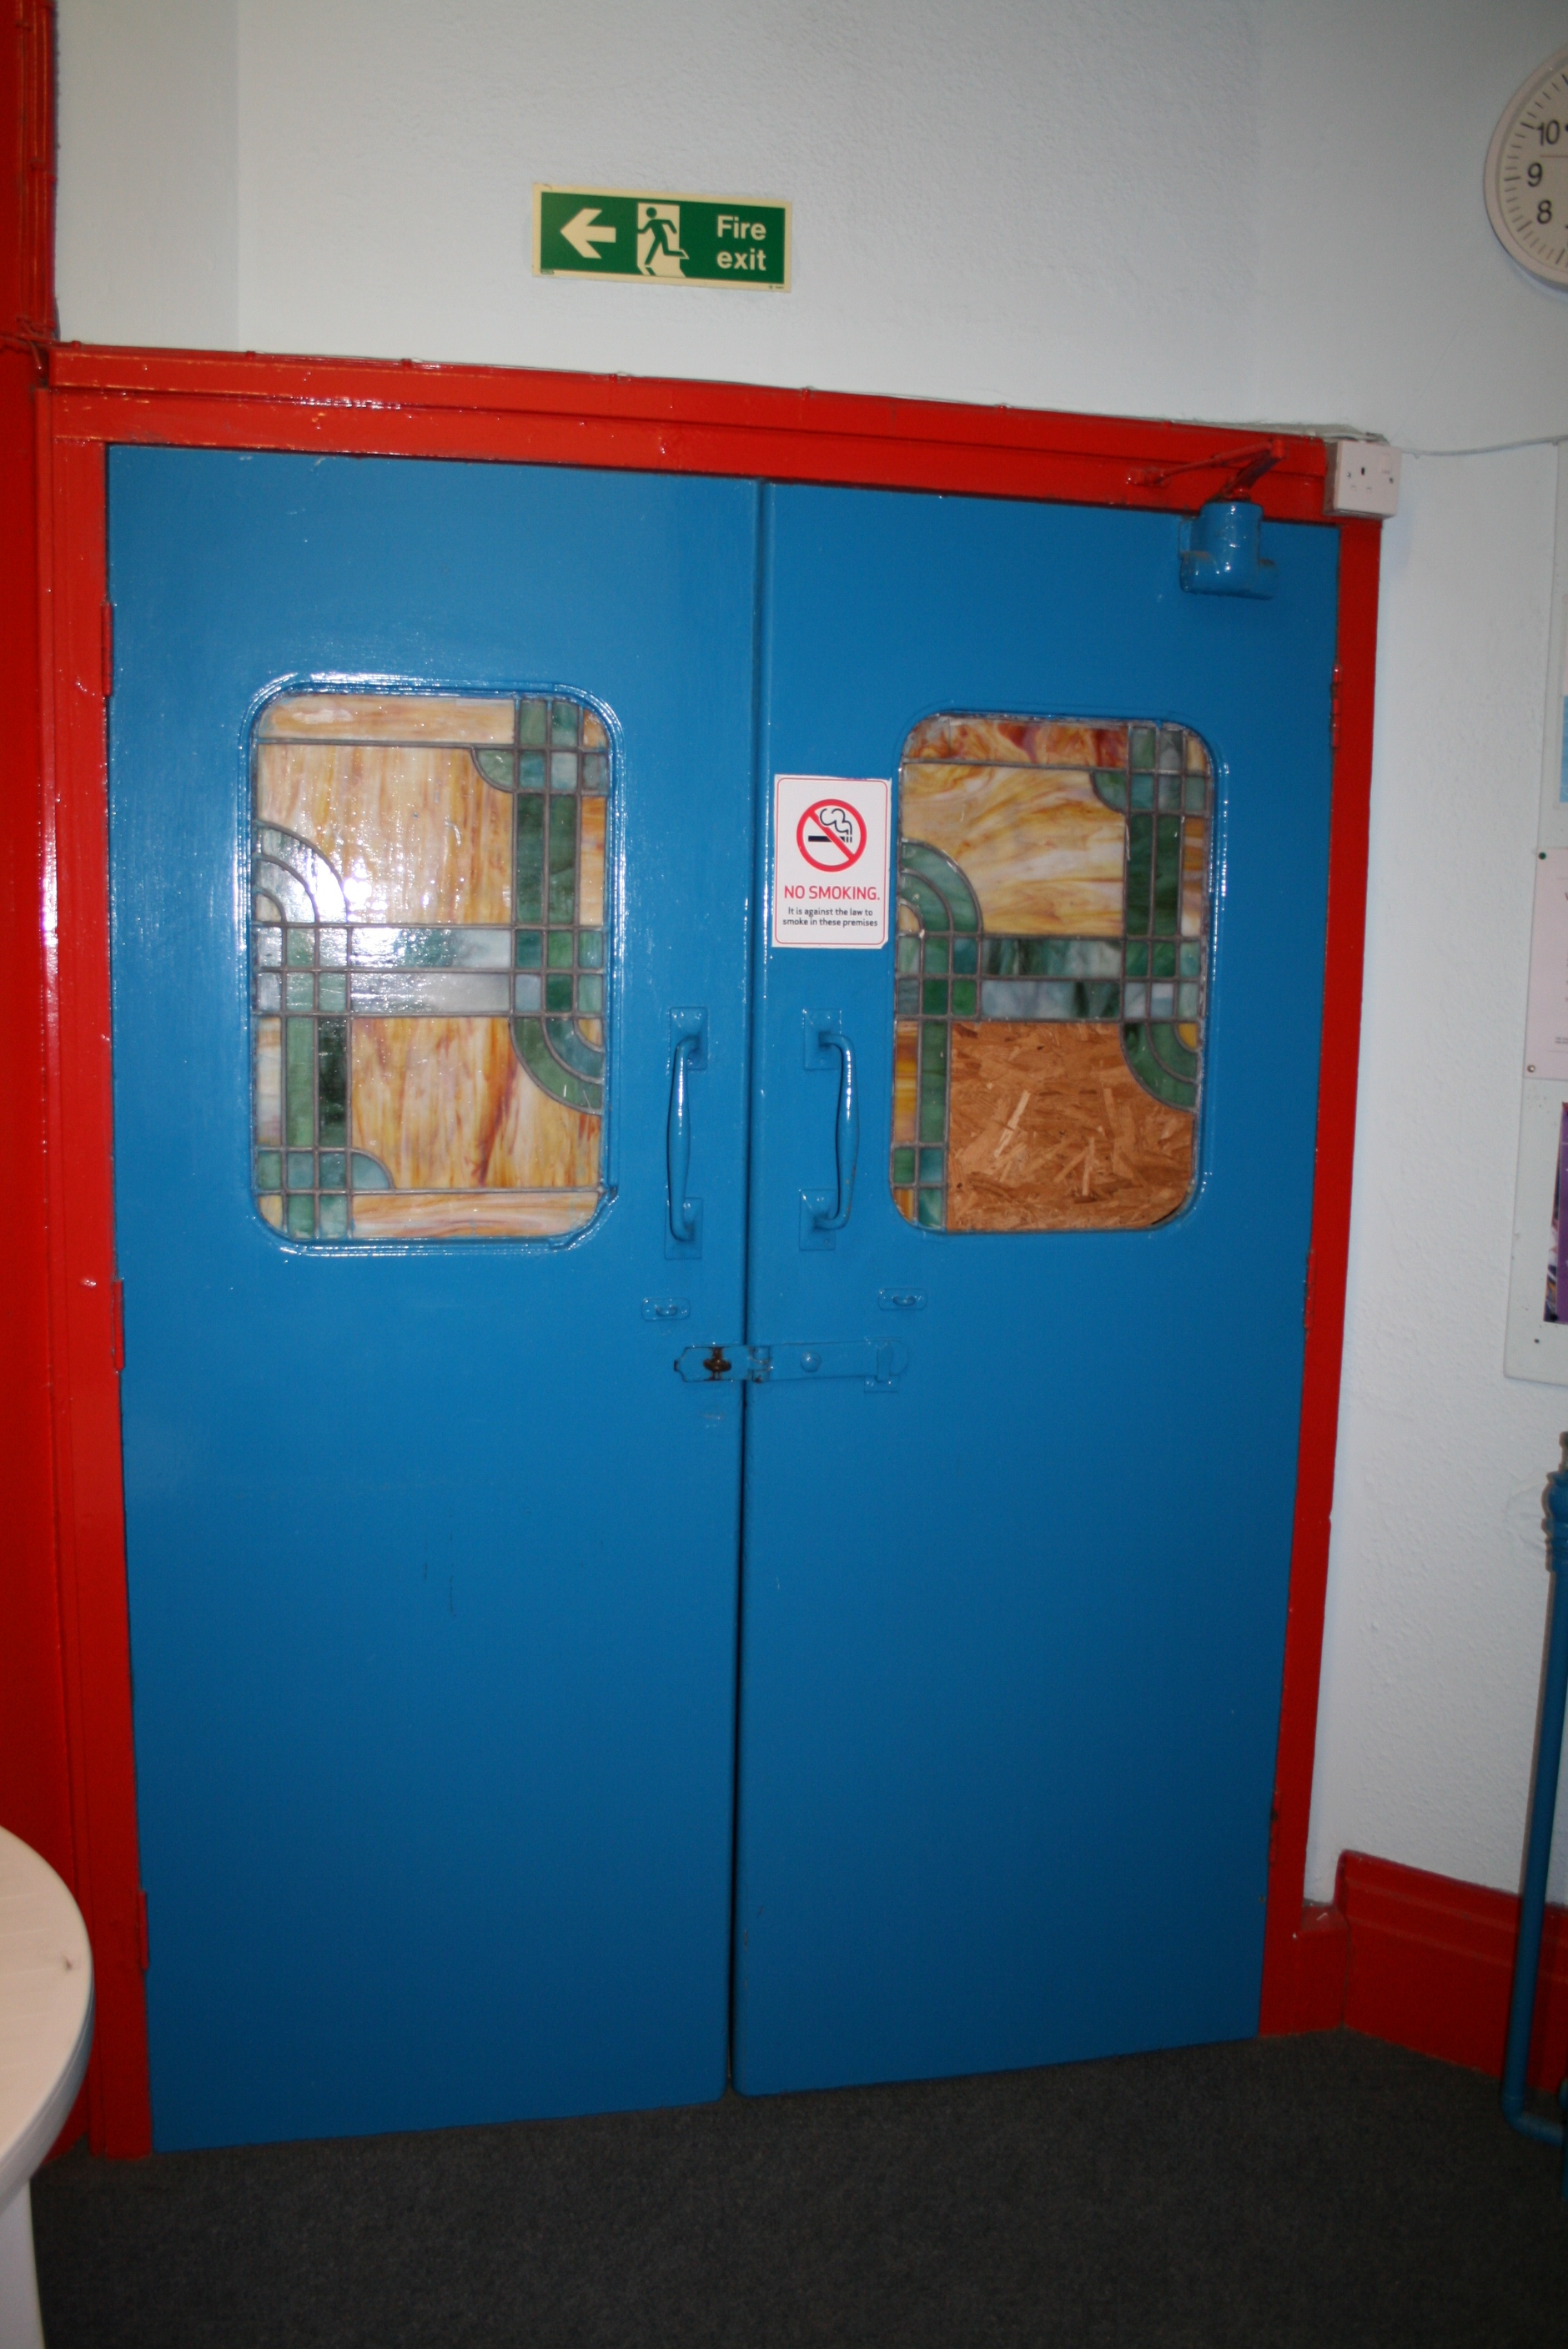 Doors to upper level of old Empress Cinema building Chatteris See 1964 photos of conversion to swimming pool. & Doors to upper level of old Empress Cinema building Chatteris See ...